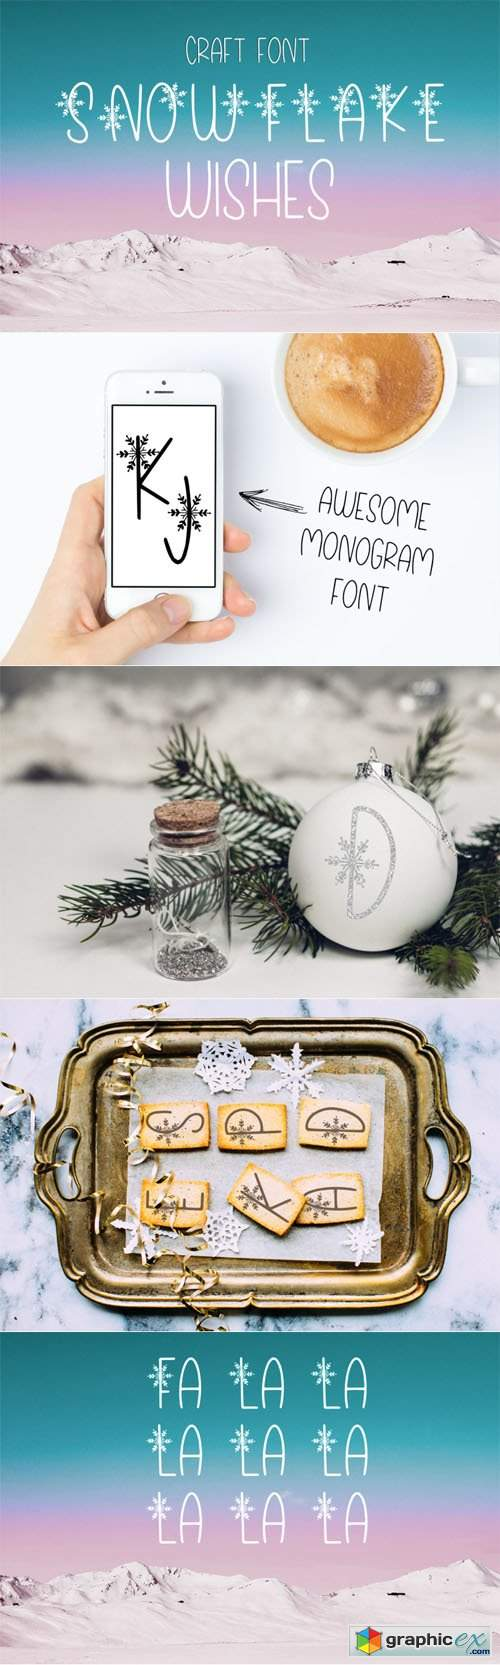 Snowflake Wishes - Craft Font